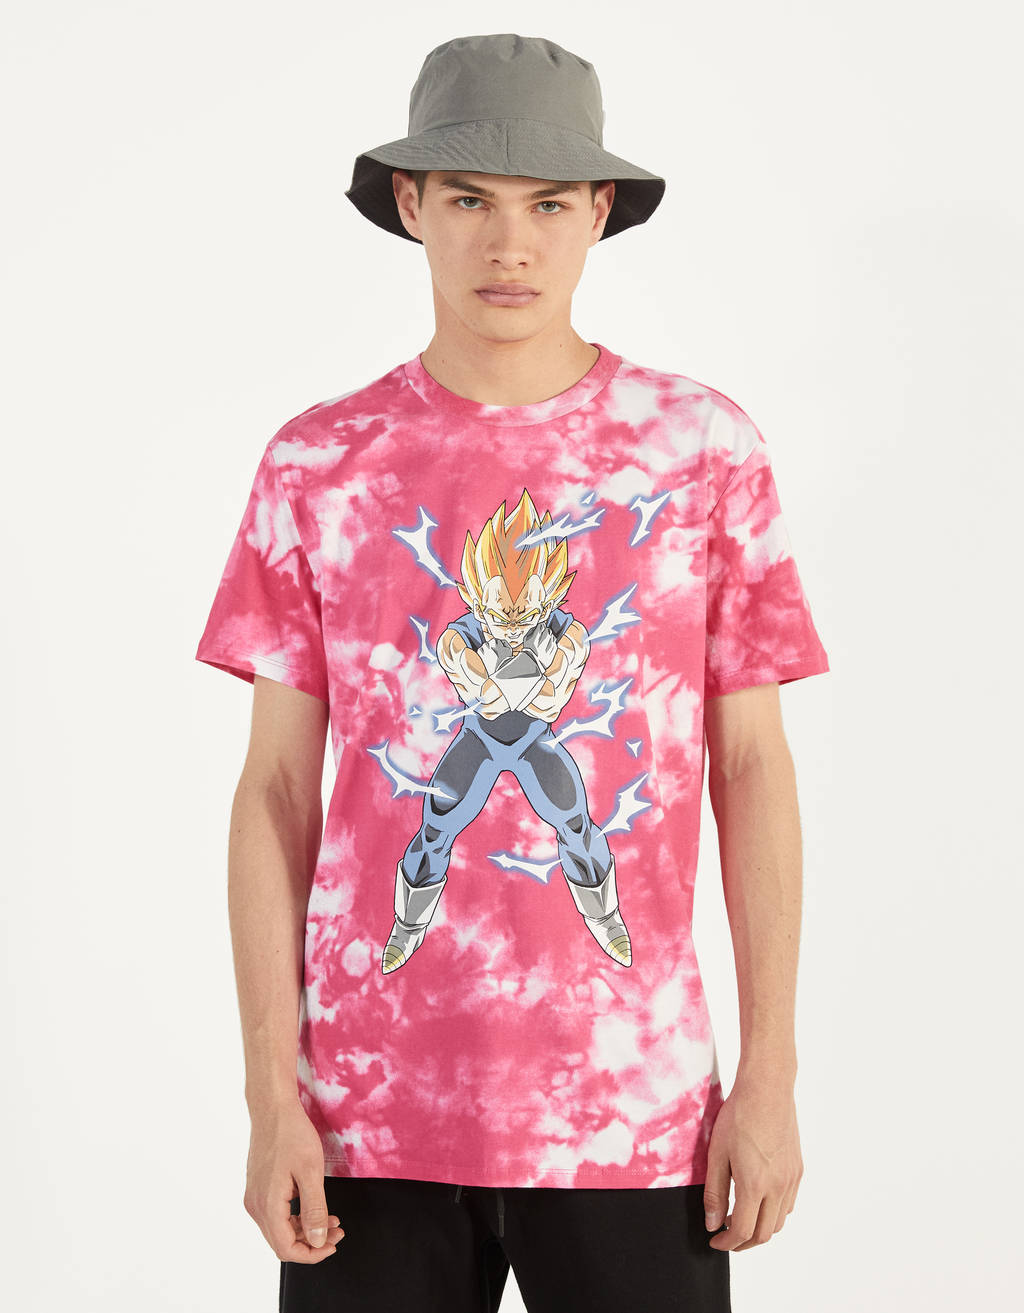 T-shirt tie-dye Dragon Ball Z x Bershka